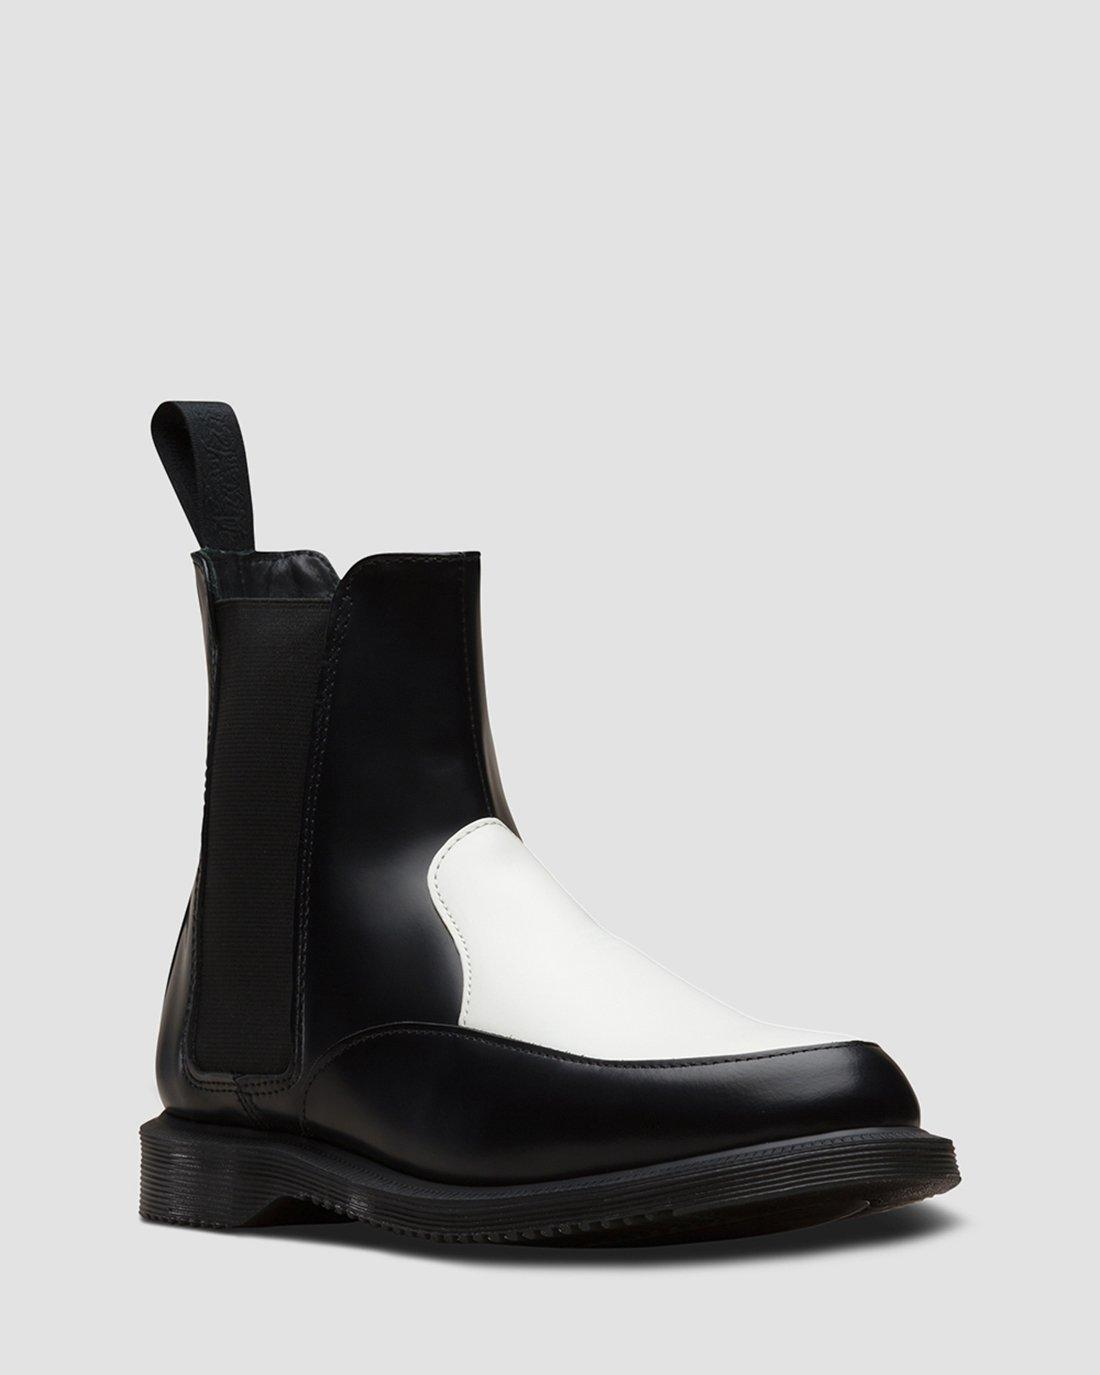 AIMELYA | Women's Boots, Shoes & Sandals | Dr. Martens Official